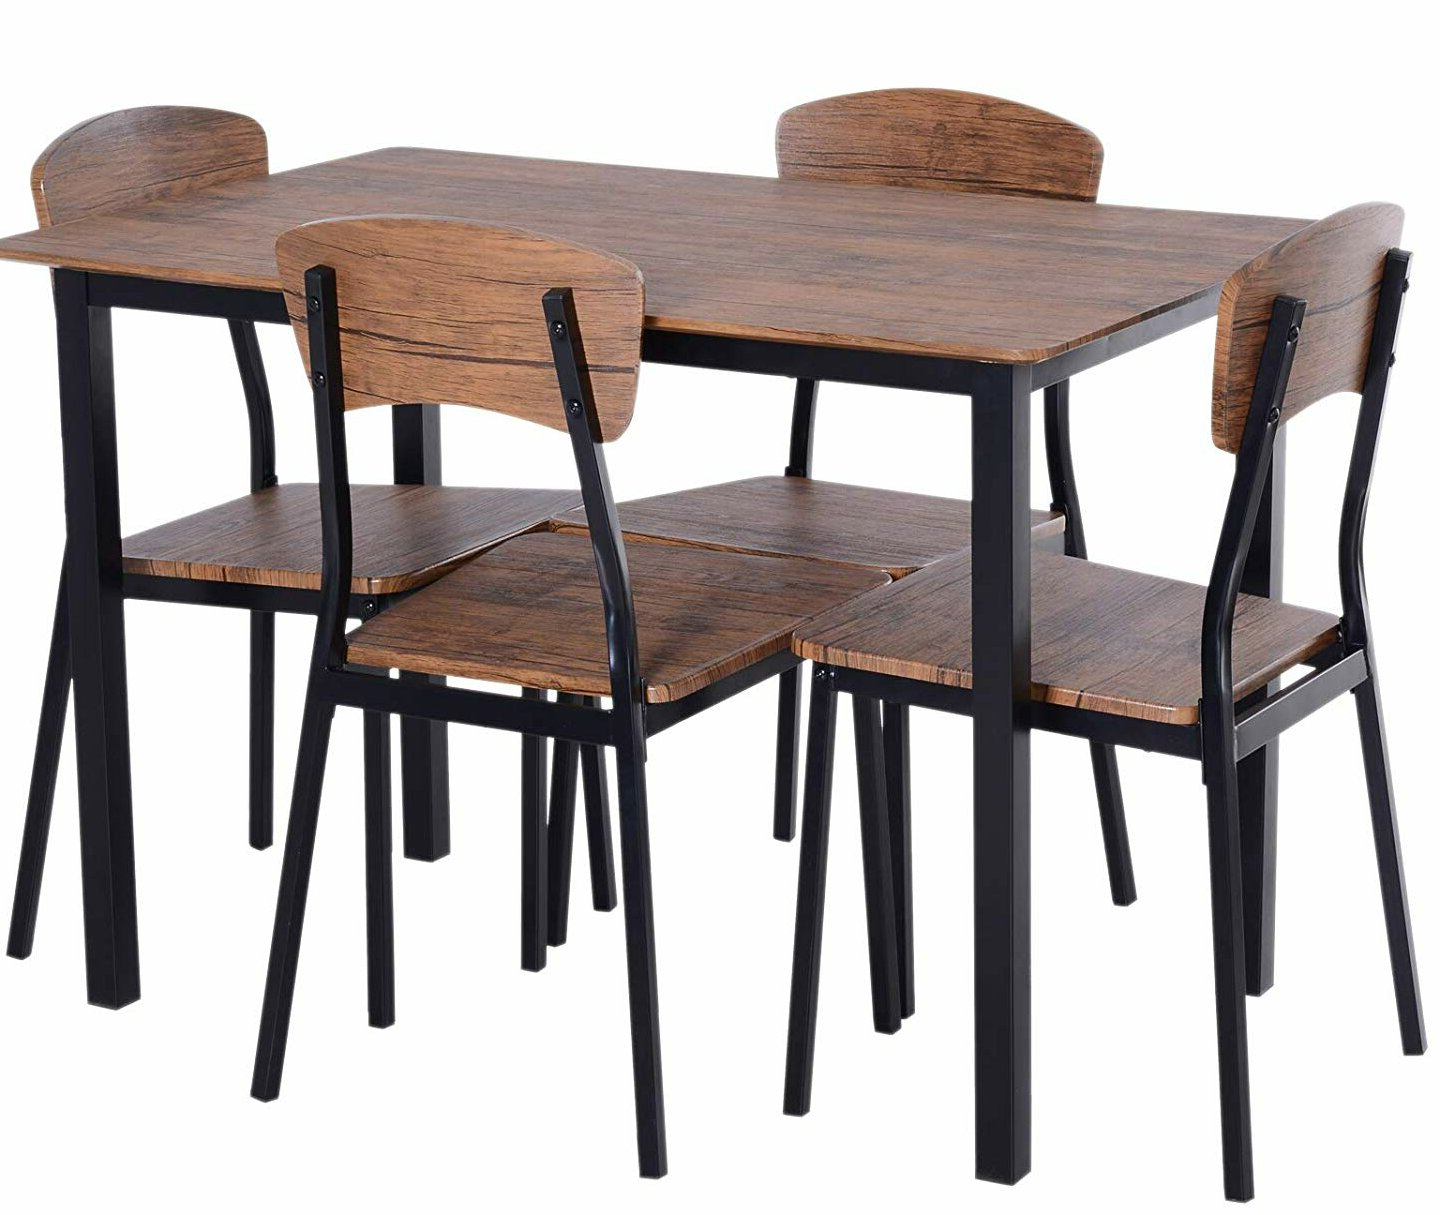 Union Rustic Castellanos Modern 5 Piece Counter Height Dining Set Inside Well Known Shepparton Vintage 3 Piece Dining Sets (View 10 of 25)